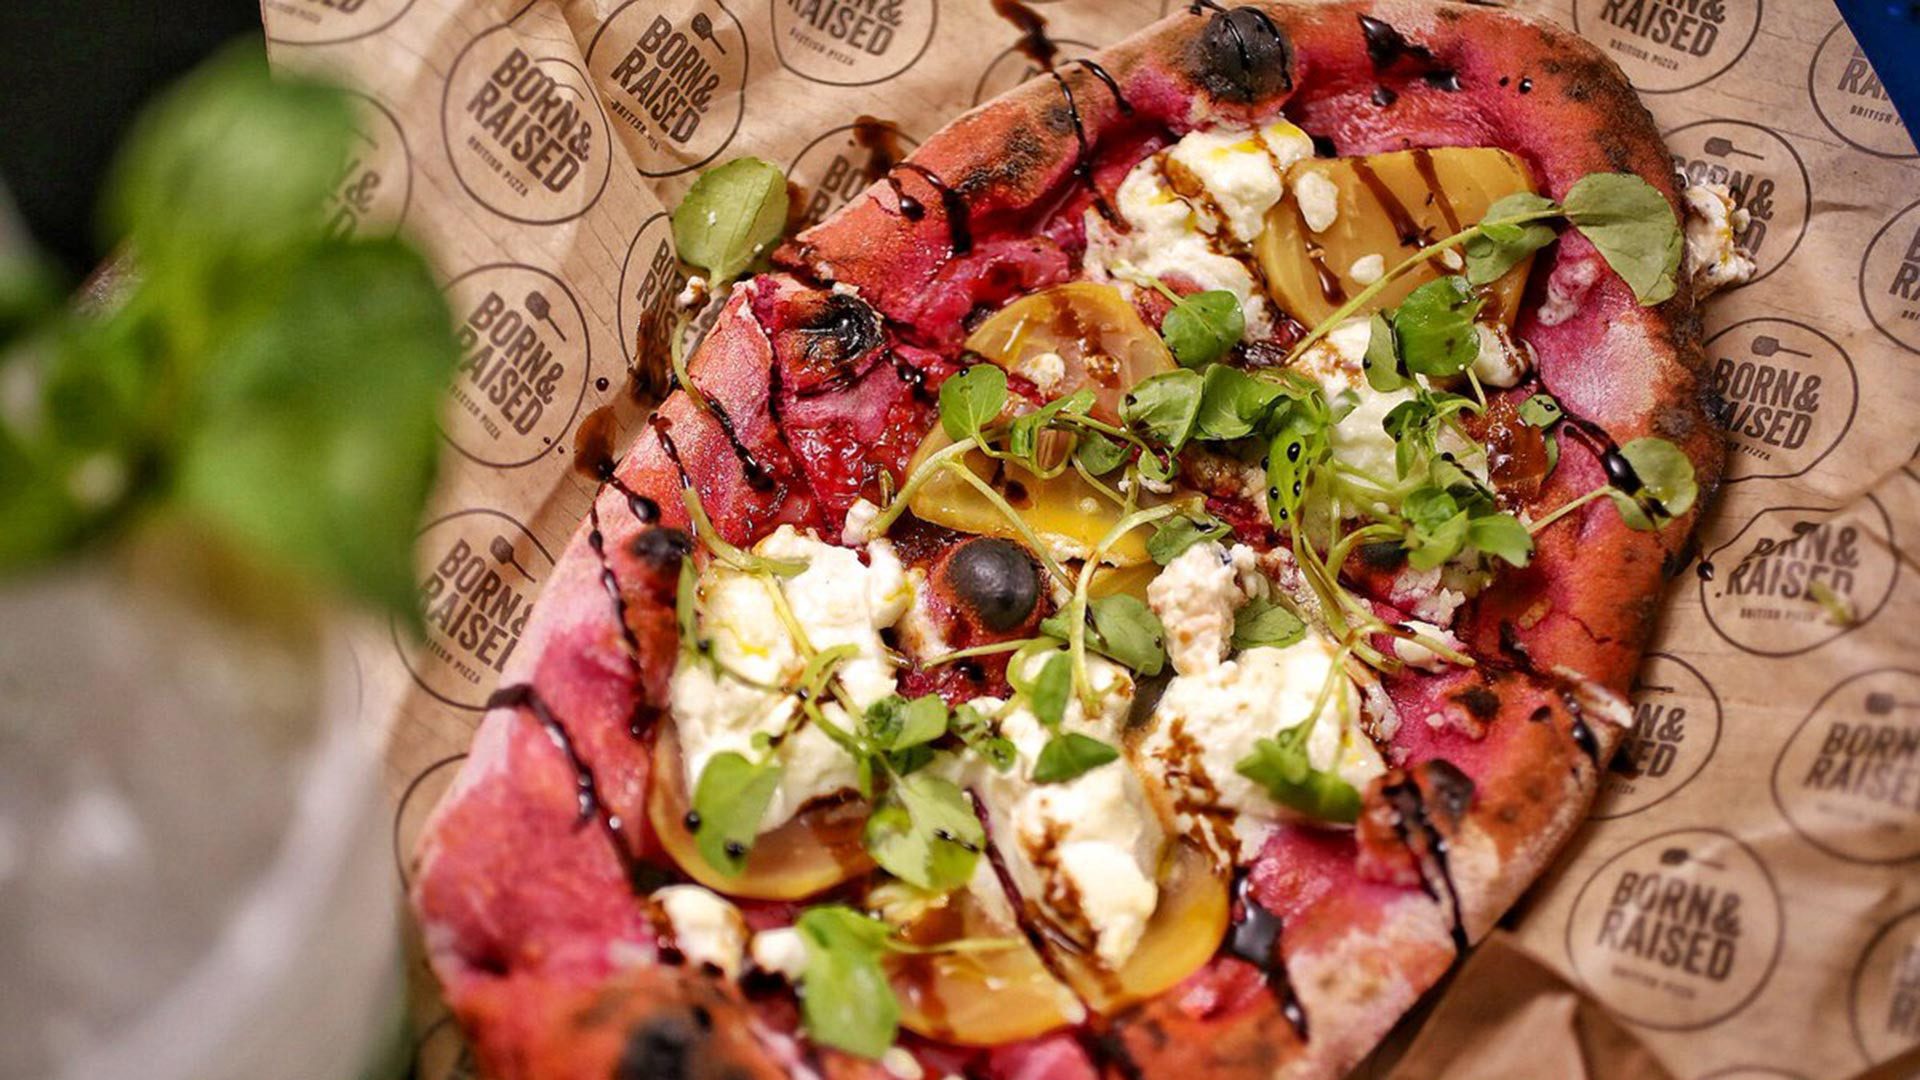 Born & Raised's pizza with Somerset goats' cheese with caramelised red onion on beetroot-infused dough